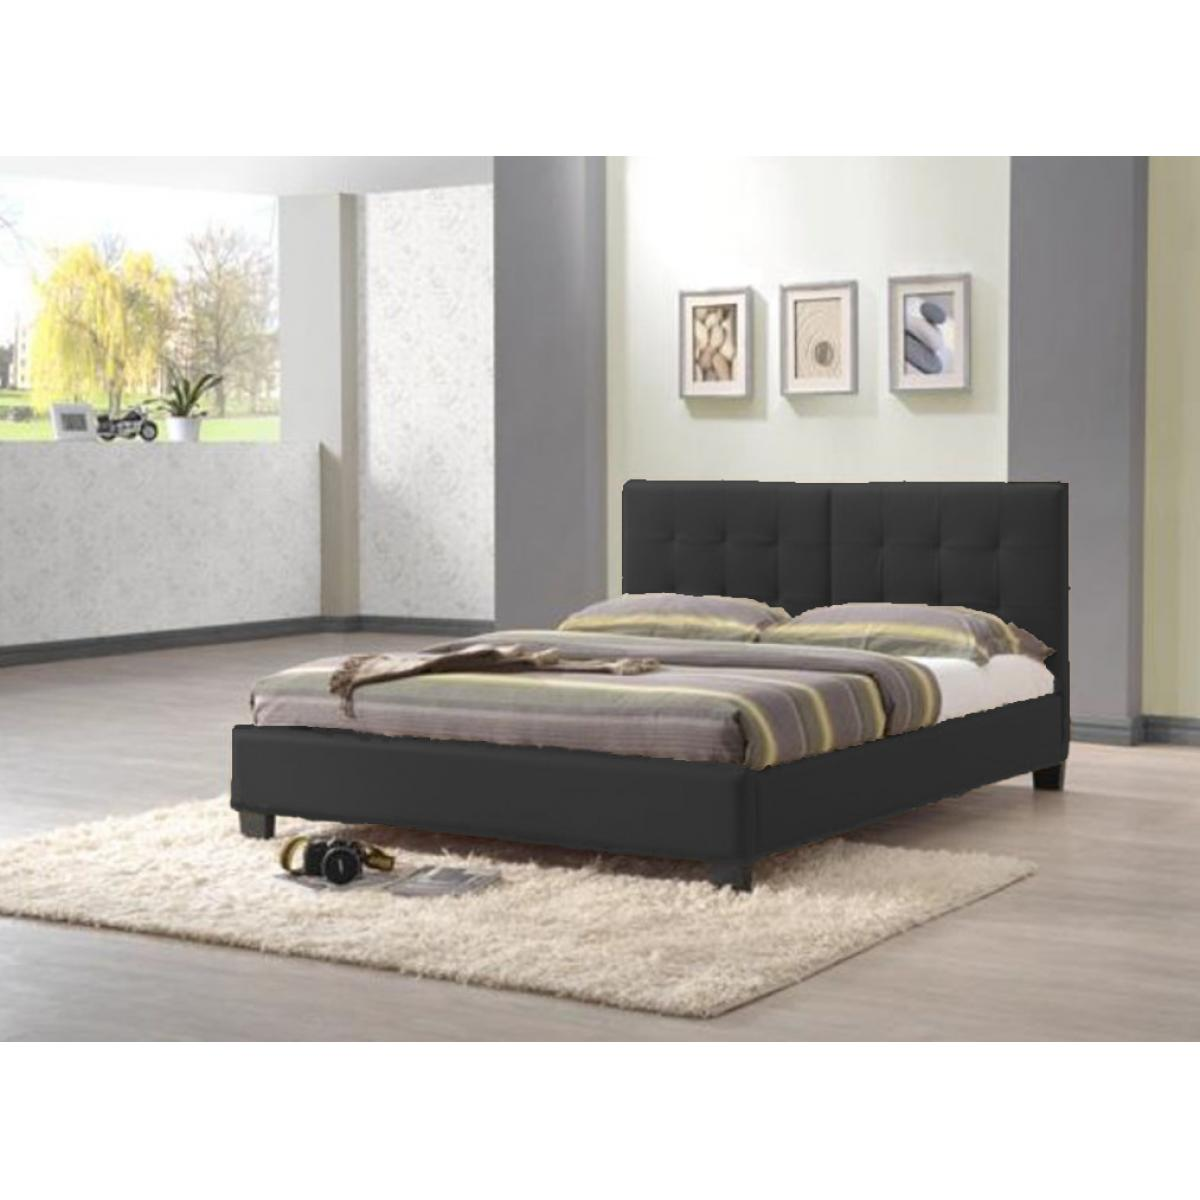 kunstleder bett polsterbett 140x200 cm designerbett futonbett doppelbett schwarz. Black Bedroom Furniture Sets. Home Design Ideas